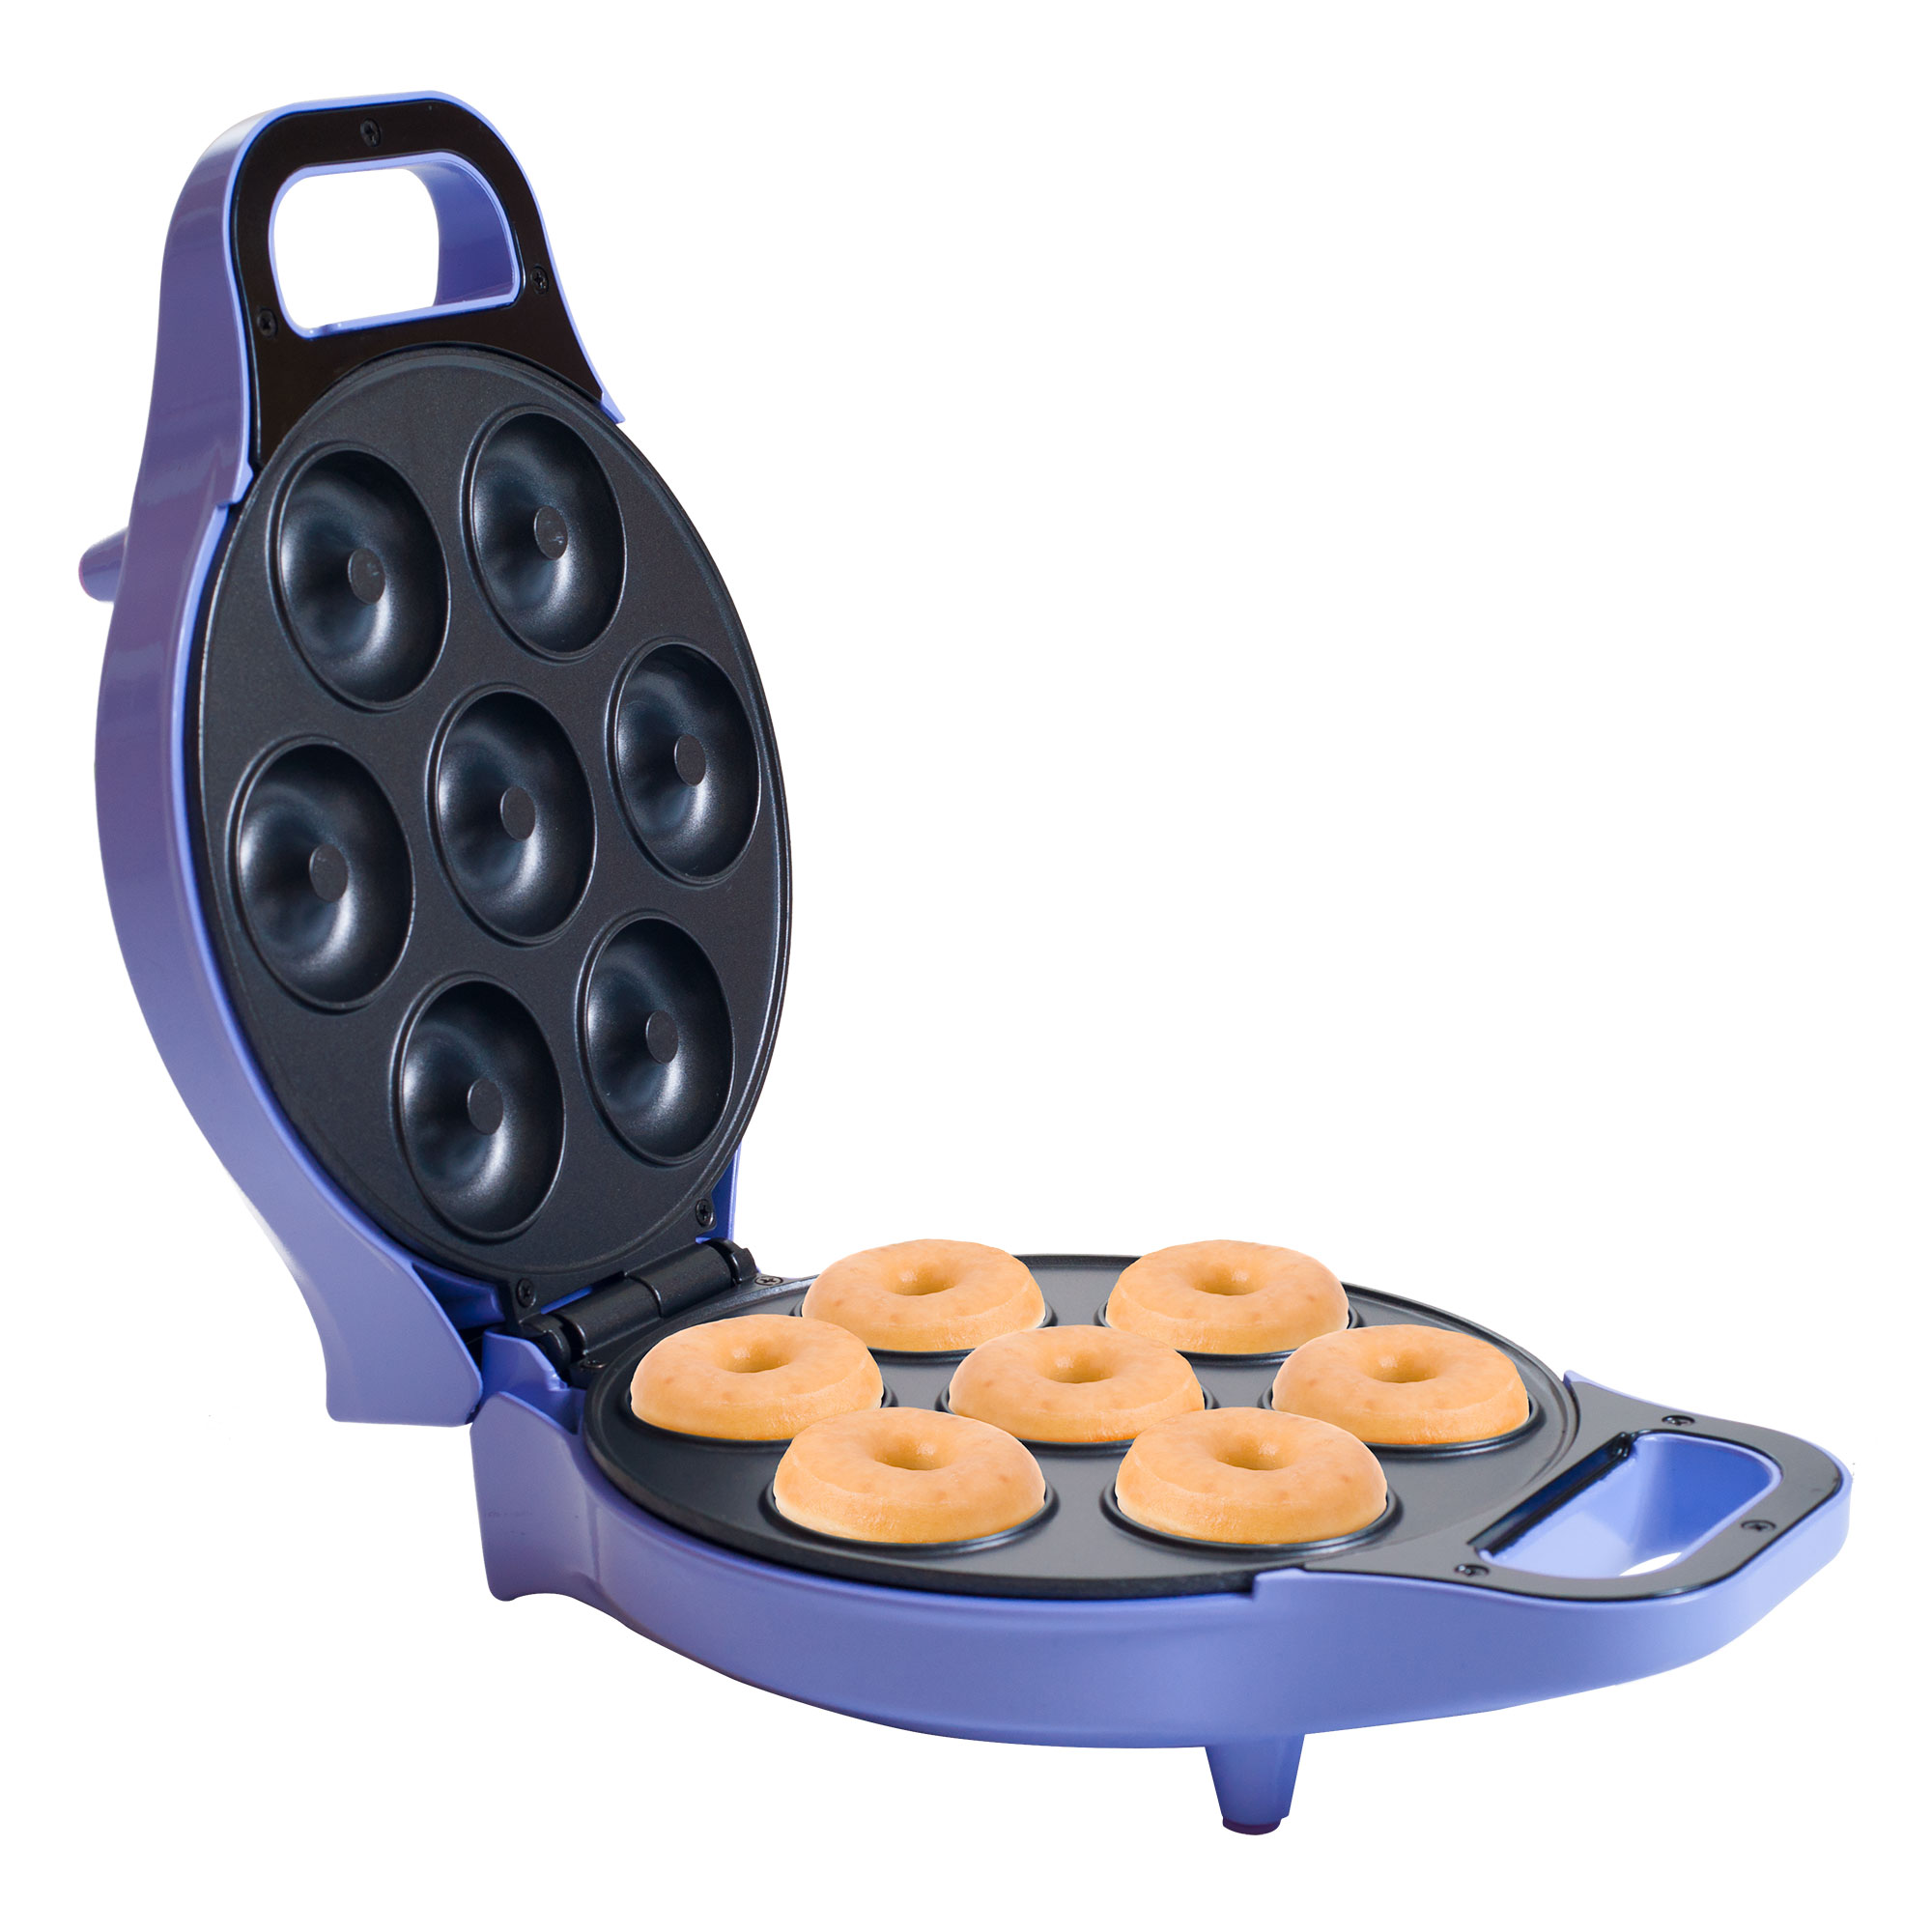 Chef Buddy Mini Hot Donut Maker - Delicious and Fresh